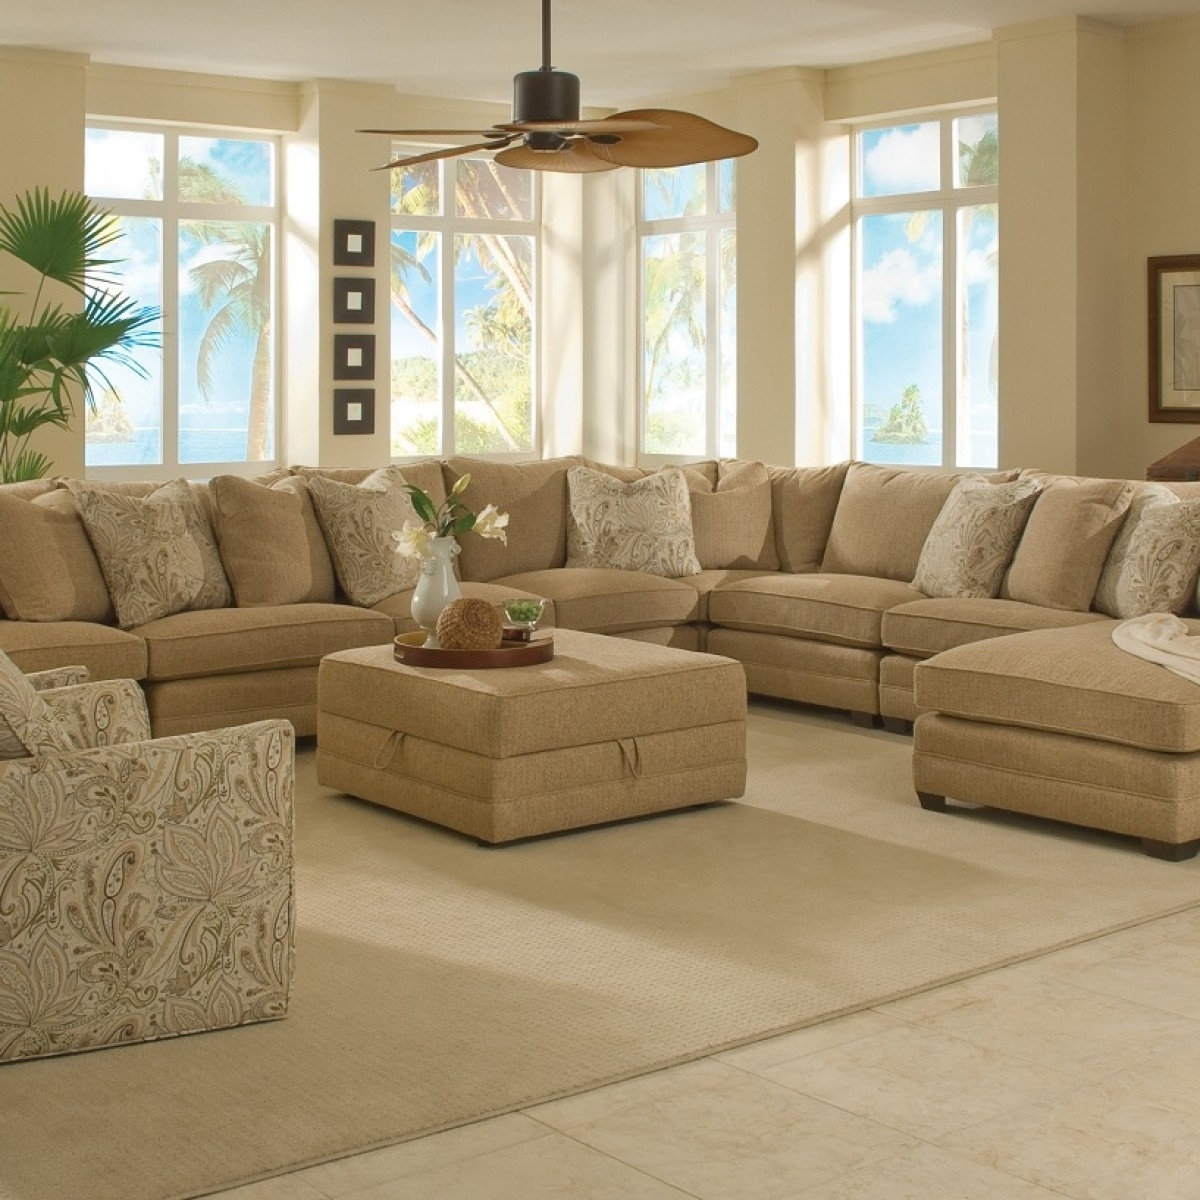 Factors To Consider Before Buying An Extra Large Sectional Sofa With Extra Large Sofas (View 6 of 10)